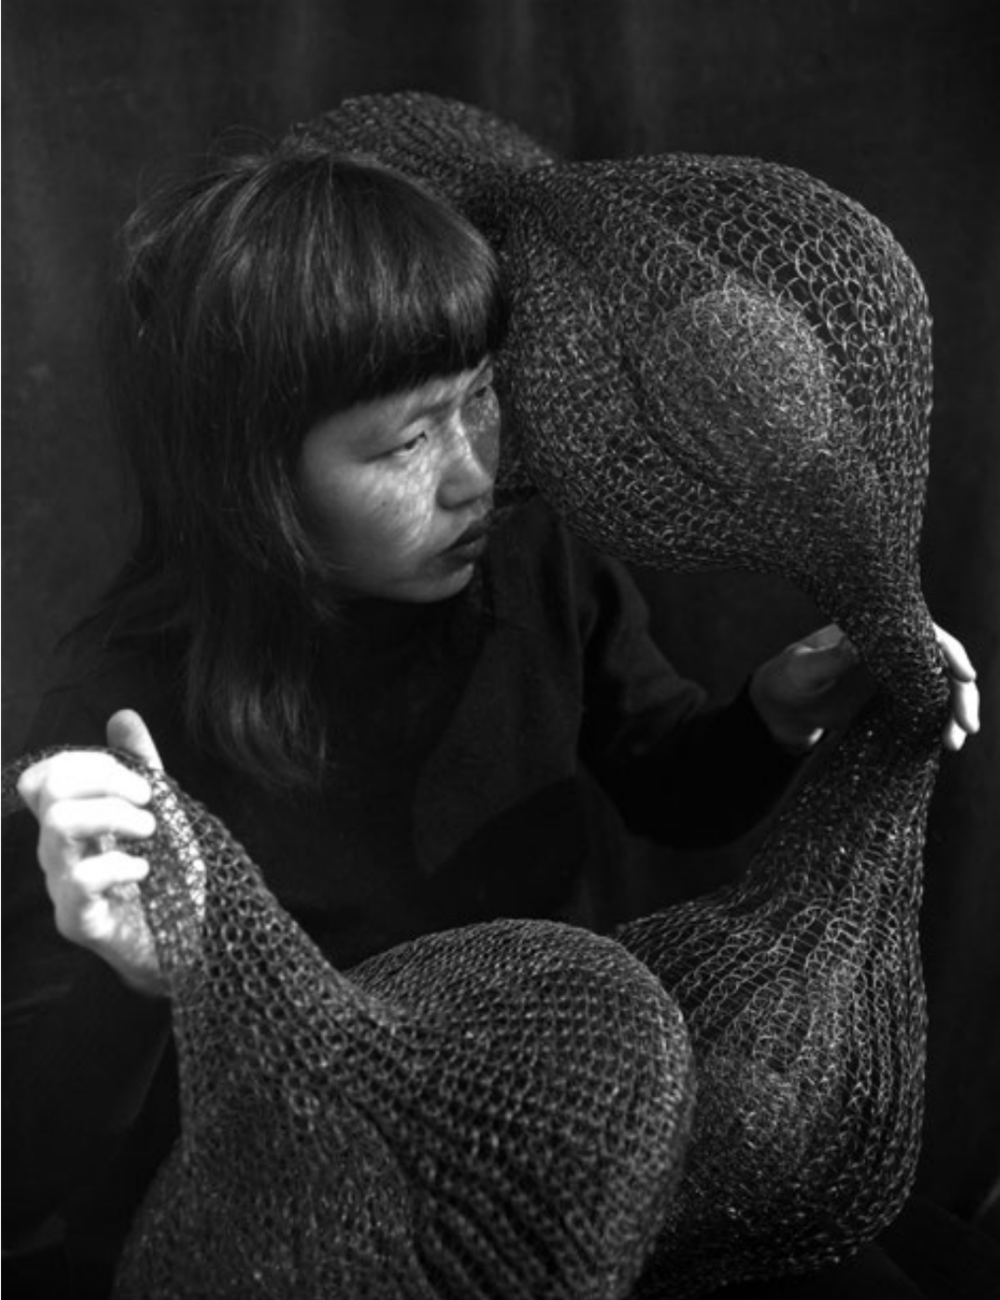 FIG 1  IMOGEN CUNNINGHAM,  RUTH HOLDING A FORM-WITHIN-FORM SCULPTURE , 1952. © IMOGEN CUNNINGHAM TRUST.